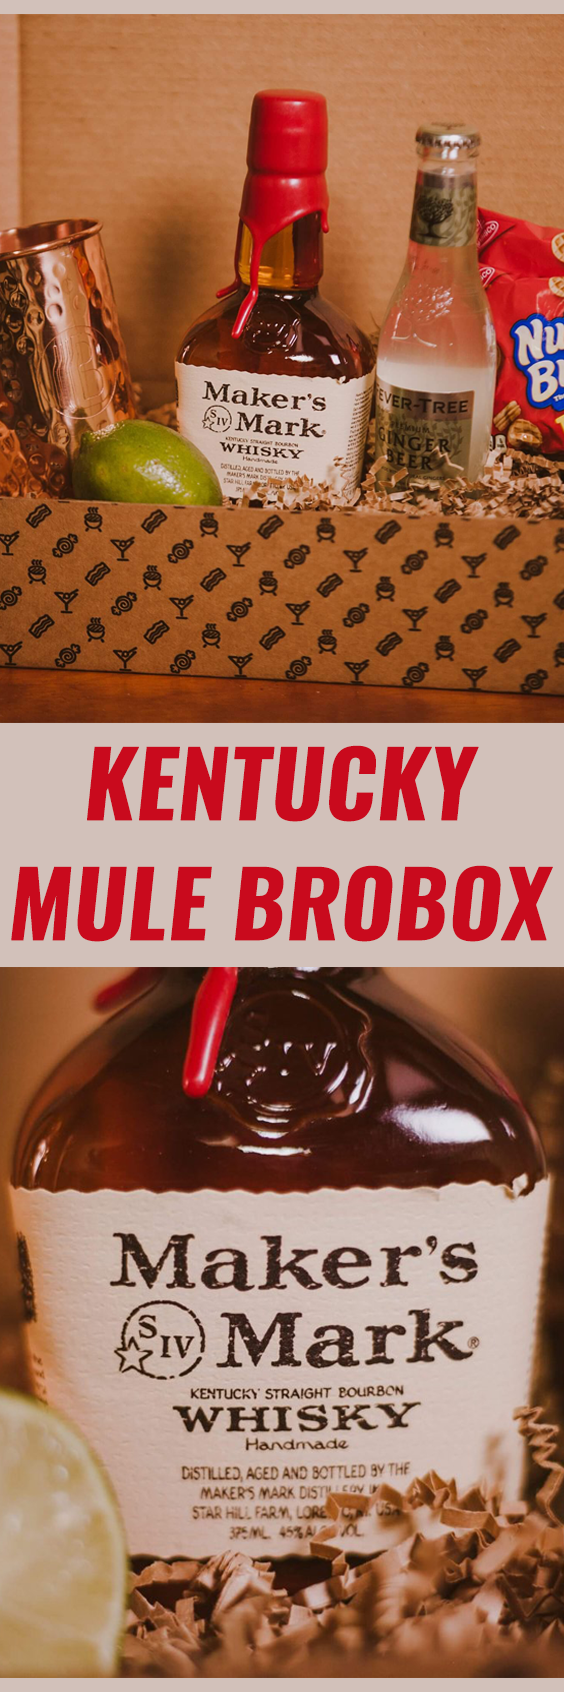 Kentucky Mule BroBox